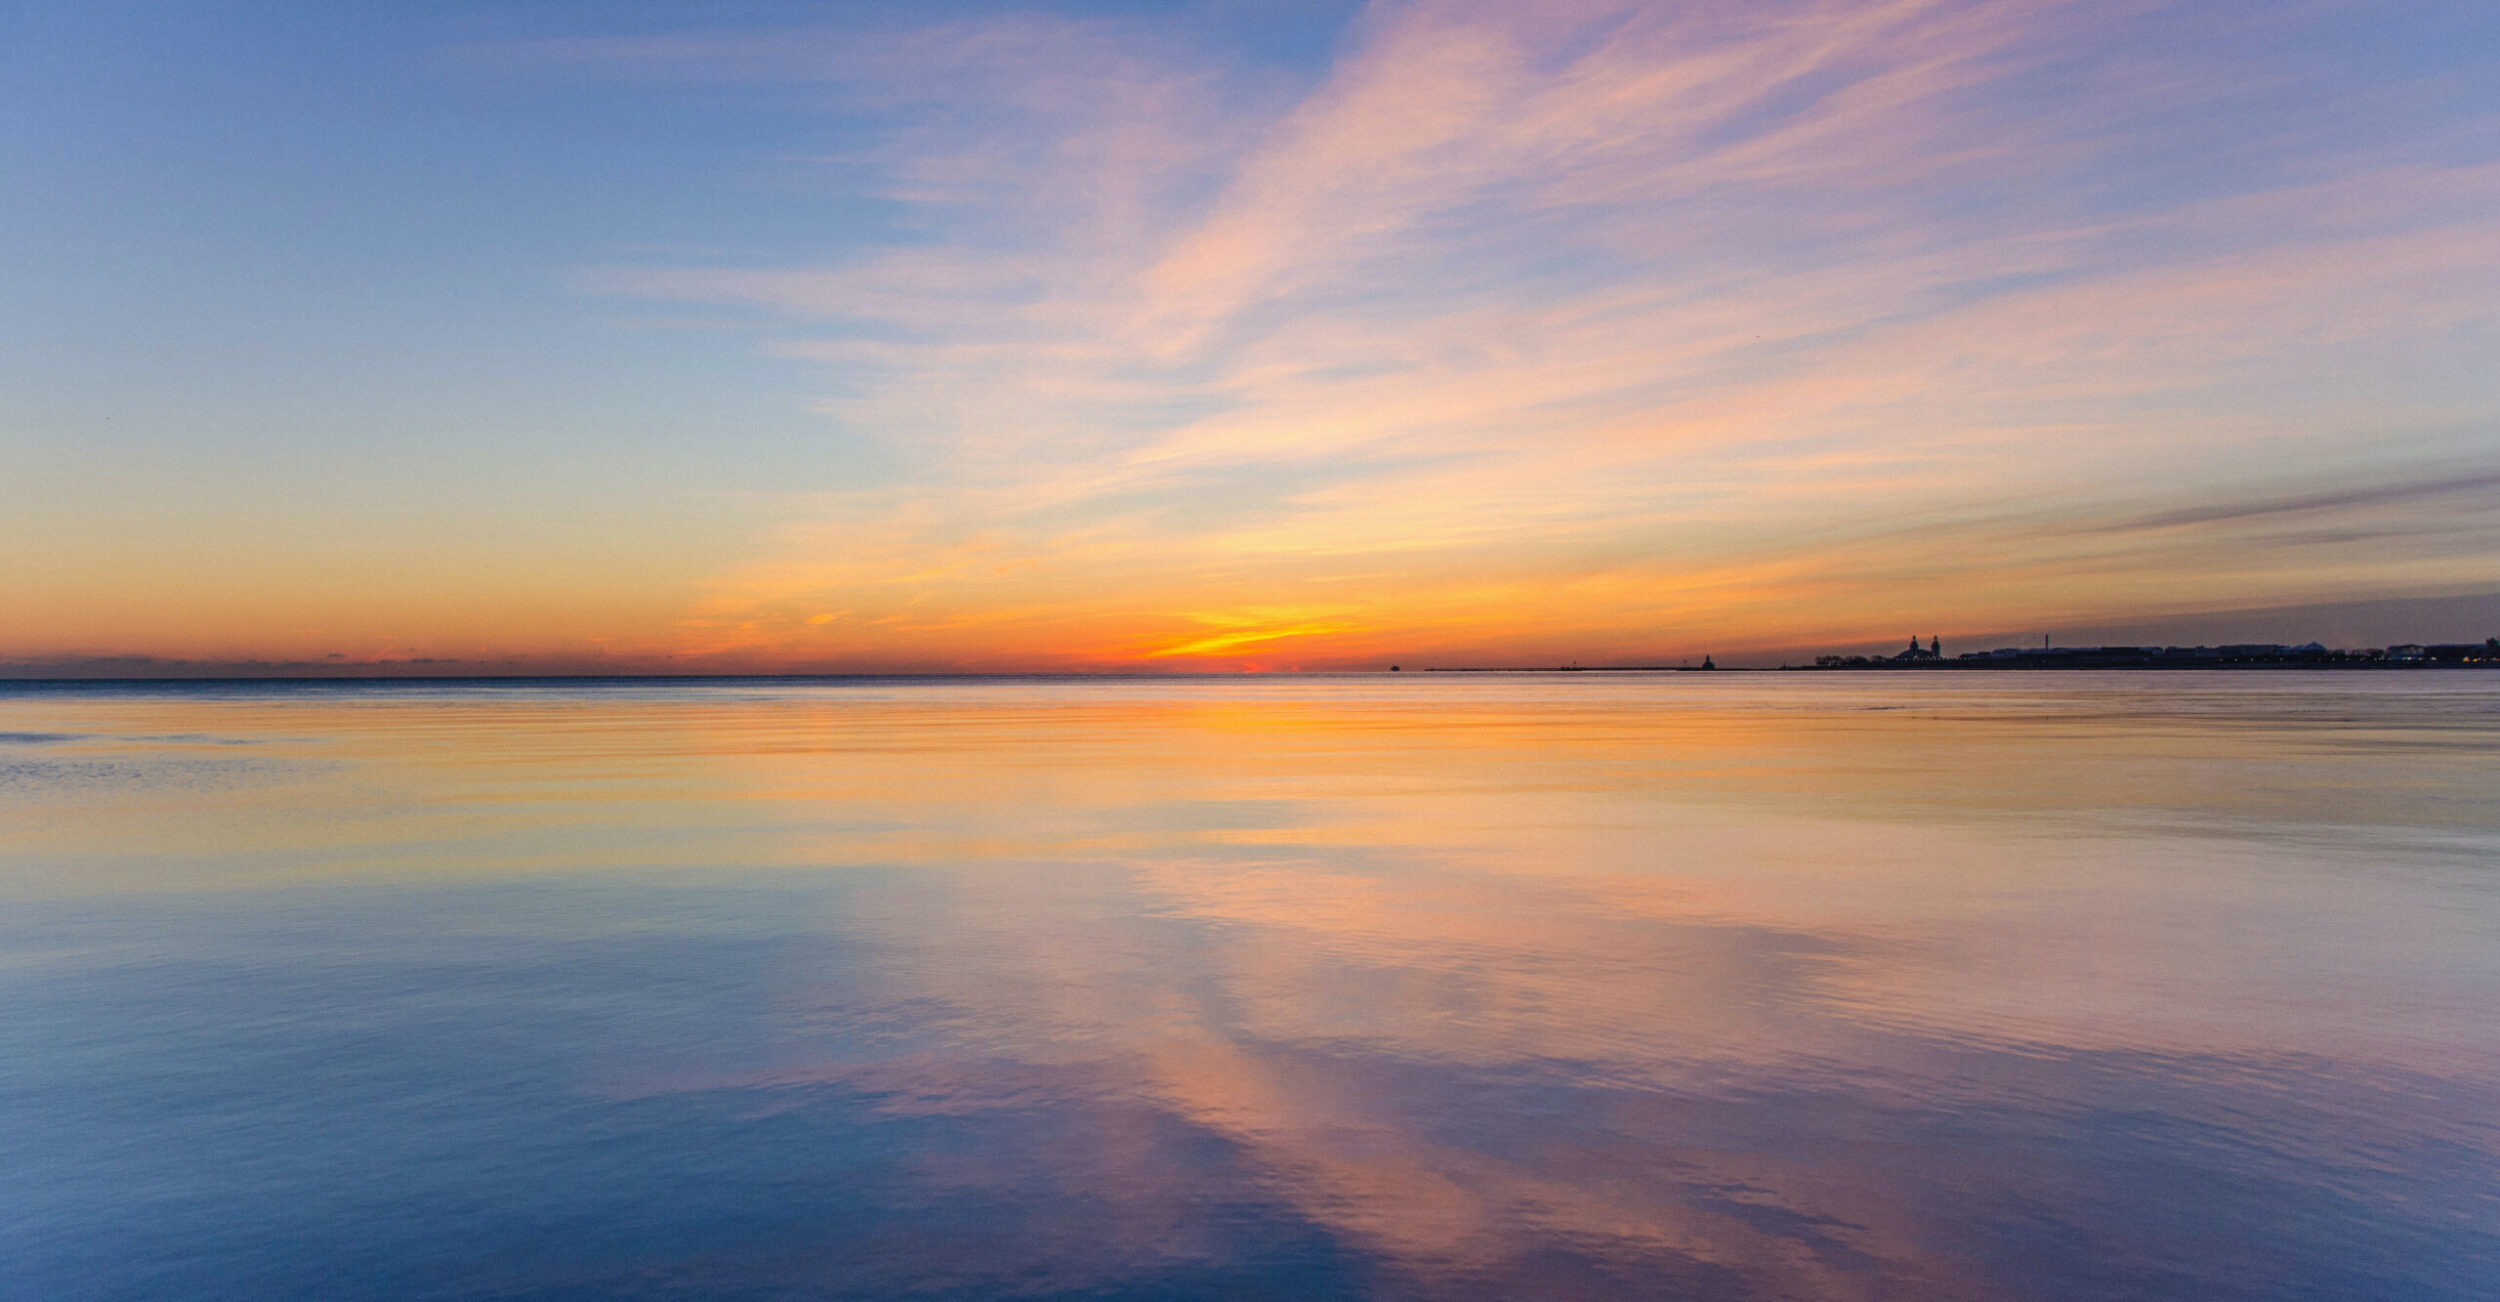 Tranquil sunset seascape